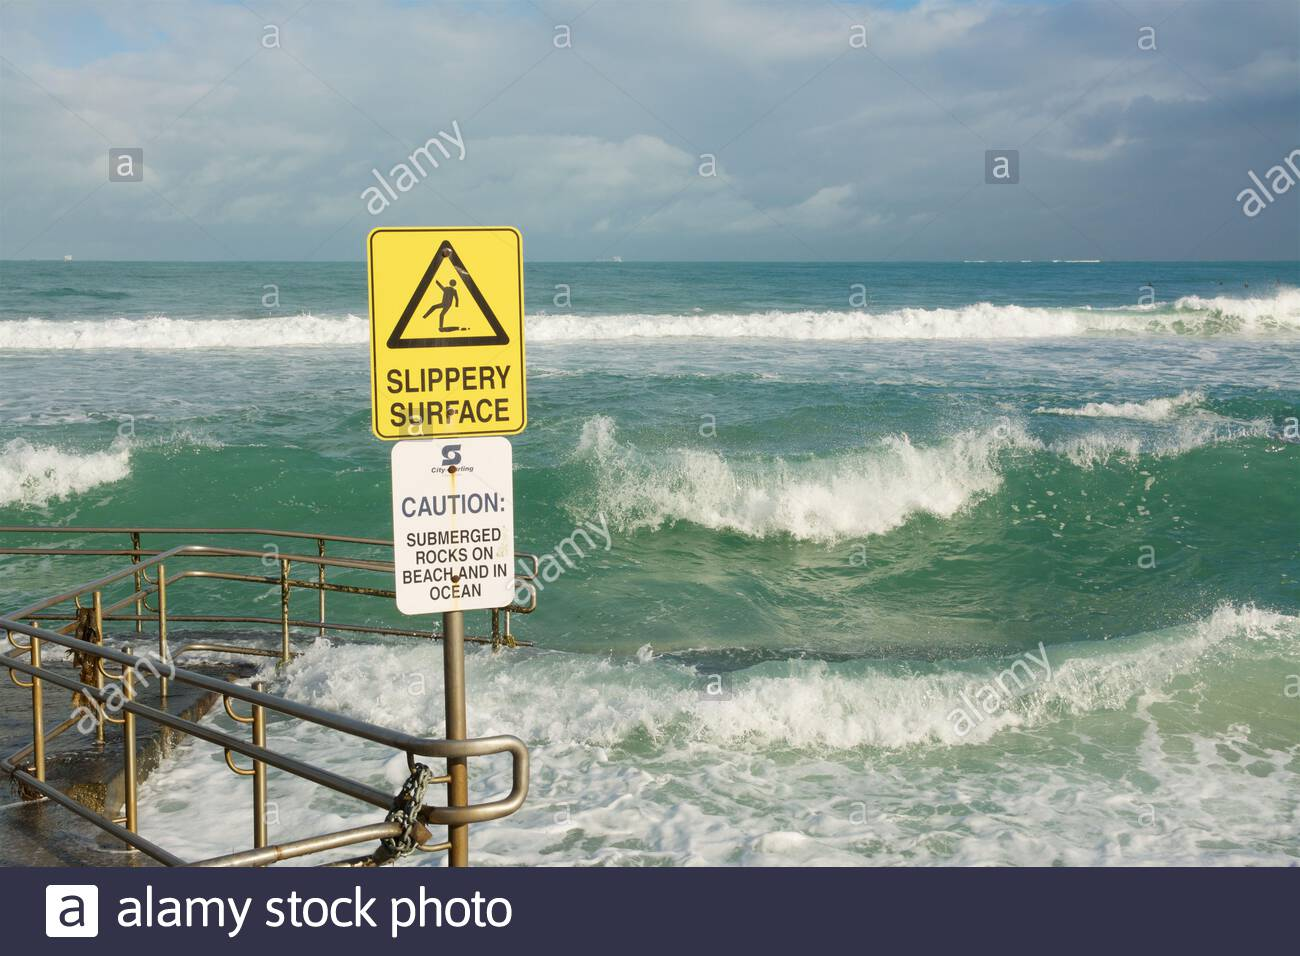 the-disability-access-ramp-at-mettams-pool-in-trigg-being-swamped-by-waves-from-a-high-swell-following-stormy-weather-perth-western-australia-2BTYM48.jpg